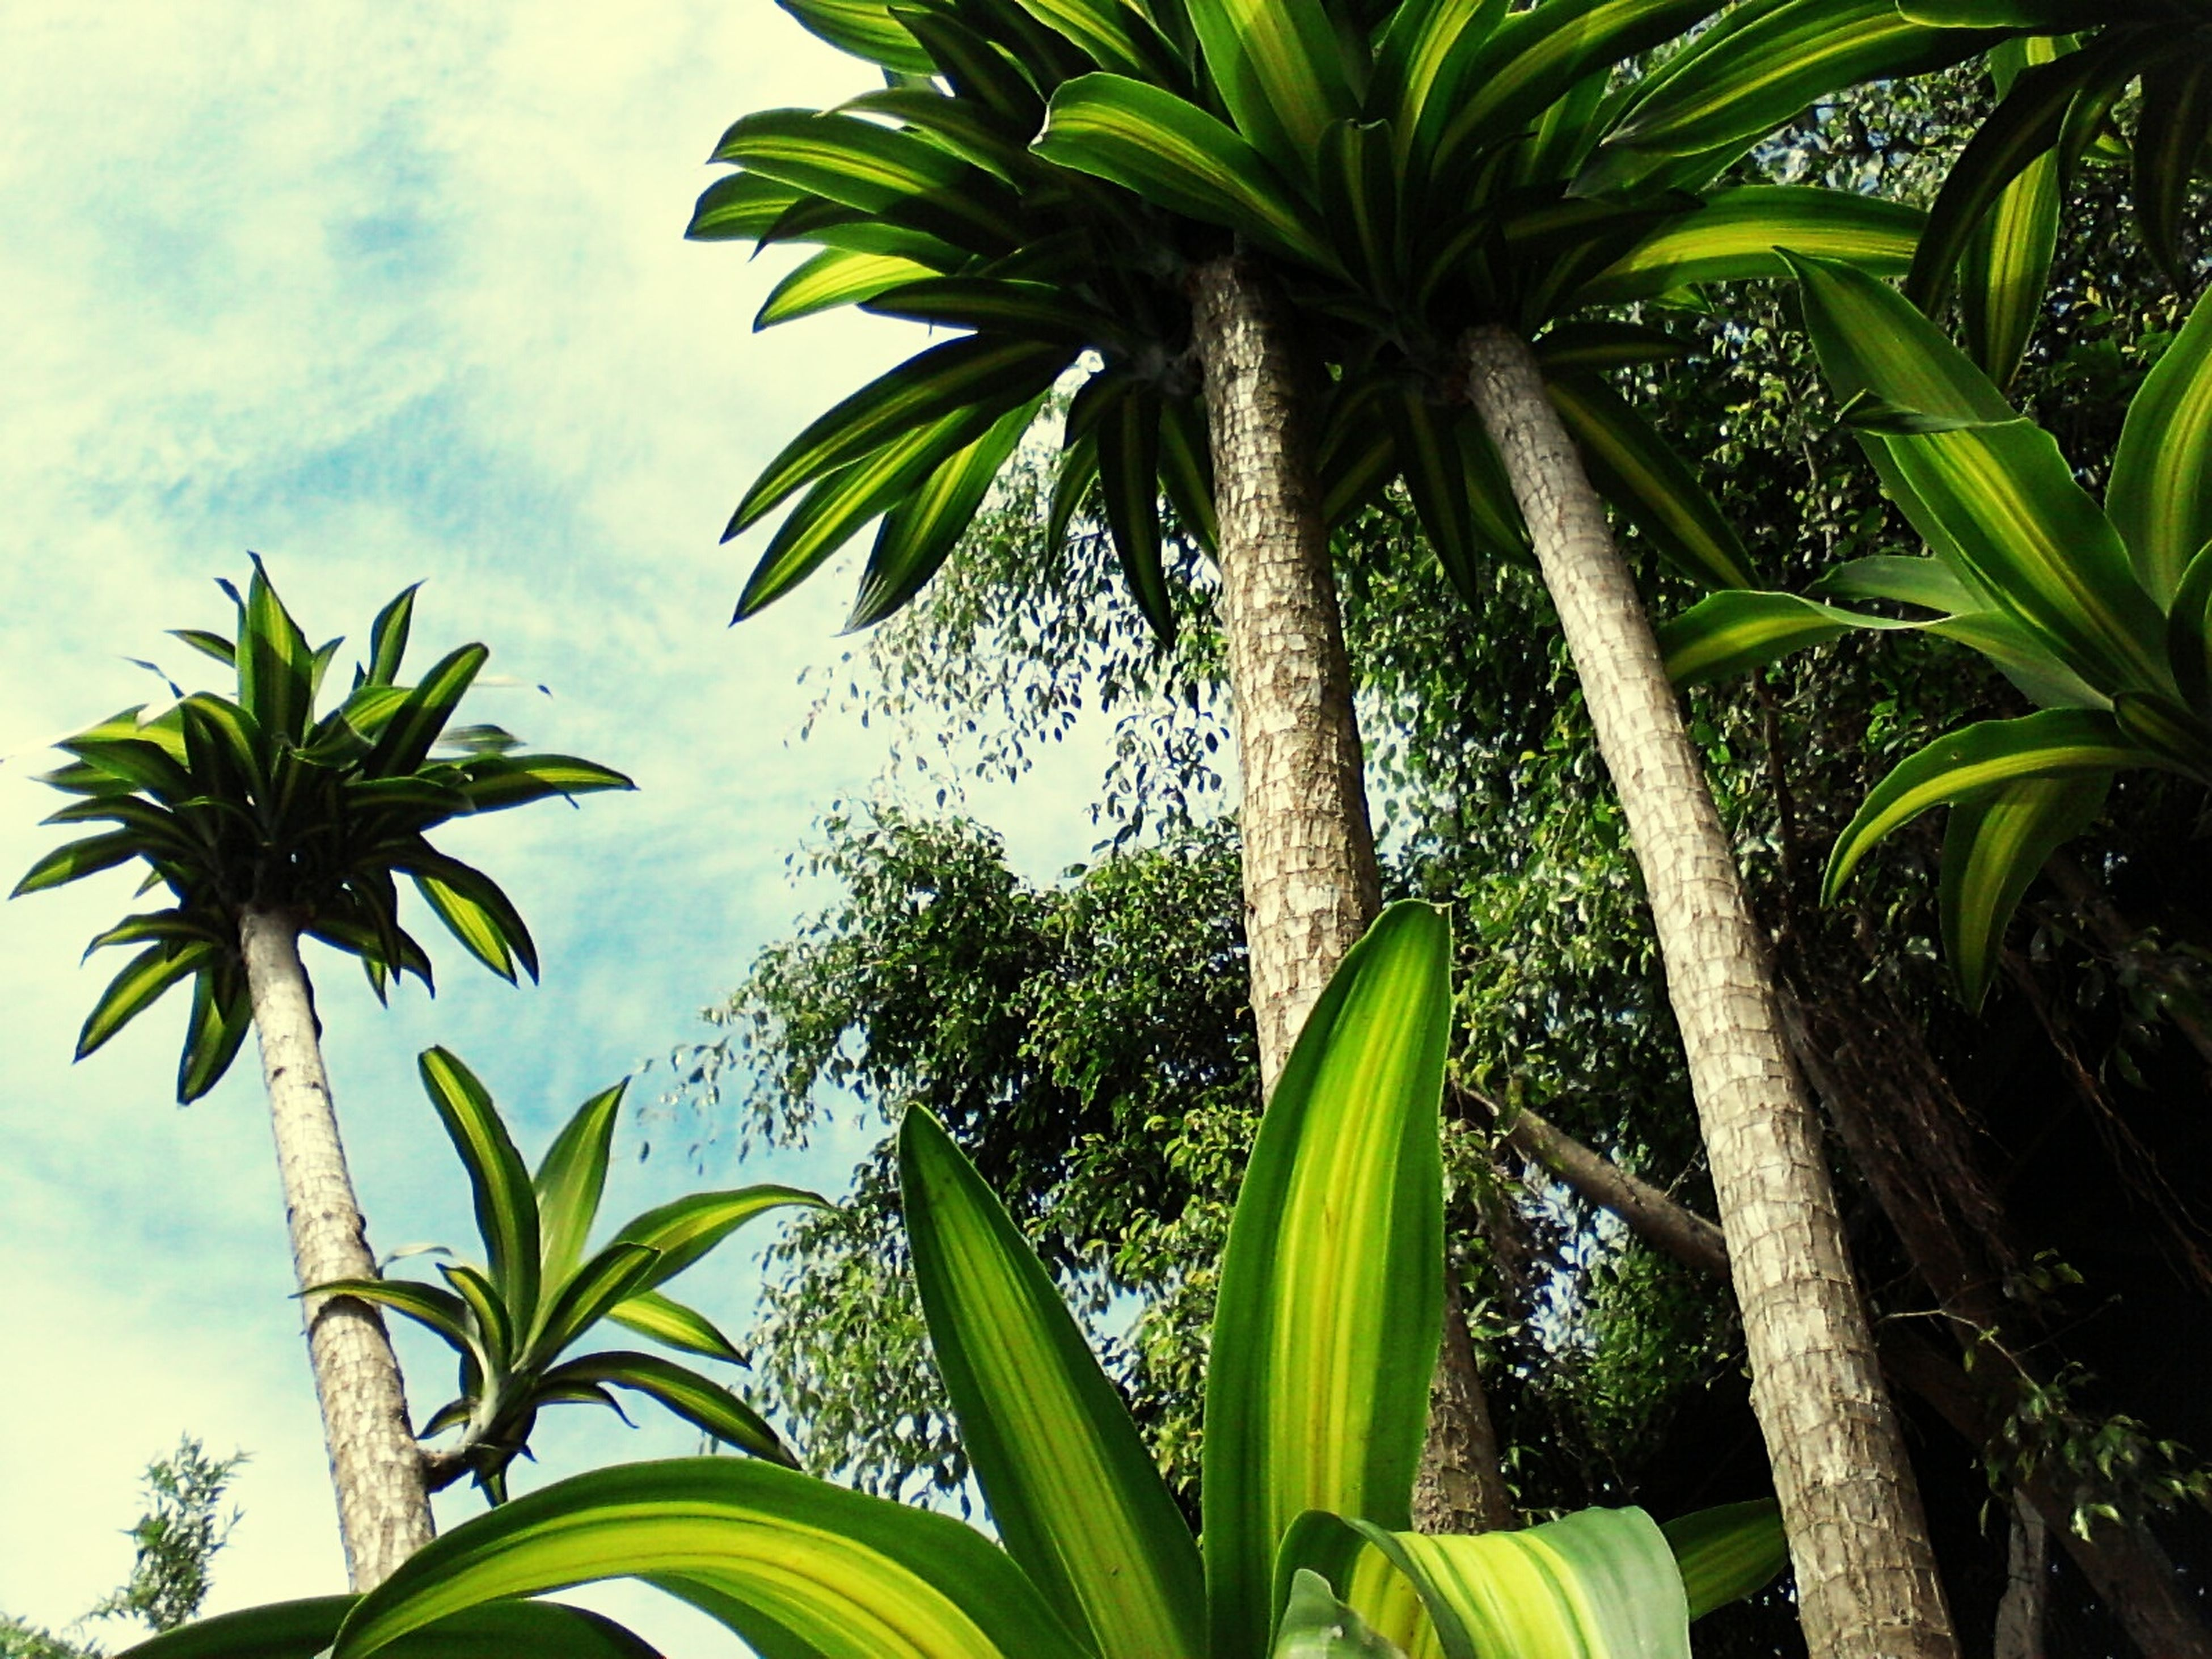 palm tree, tree, growth, green color, leaf, low angle view, nature, sky, no people, tropical climate, outdoors, day, beauty in nature